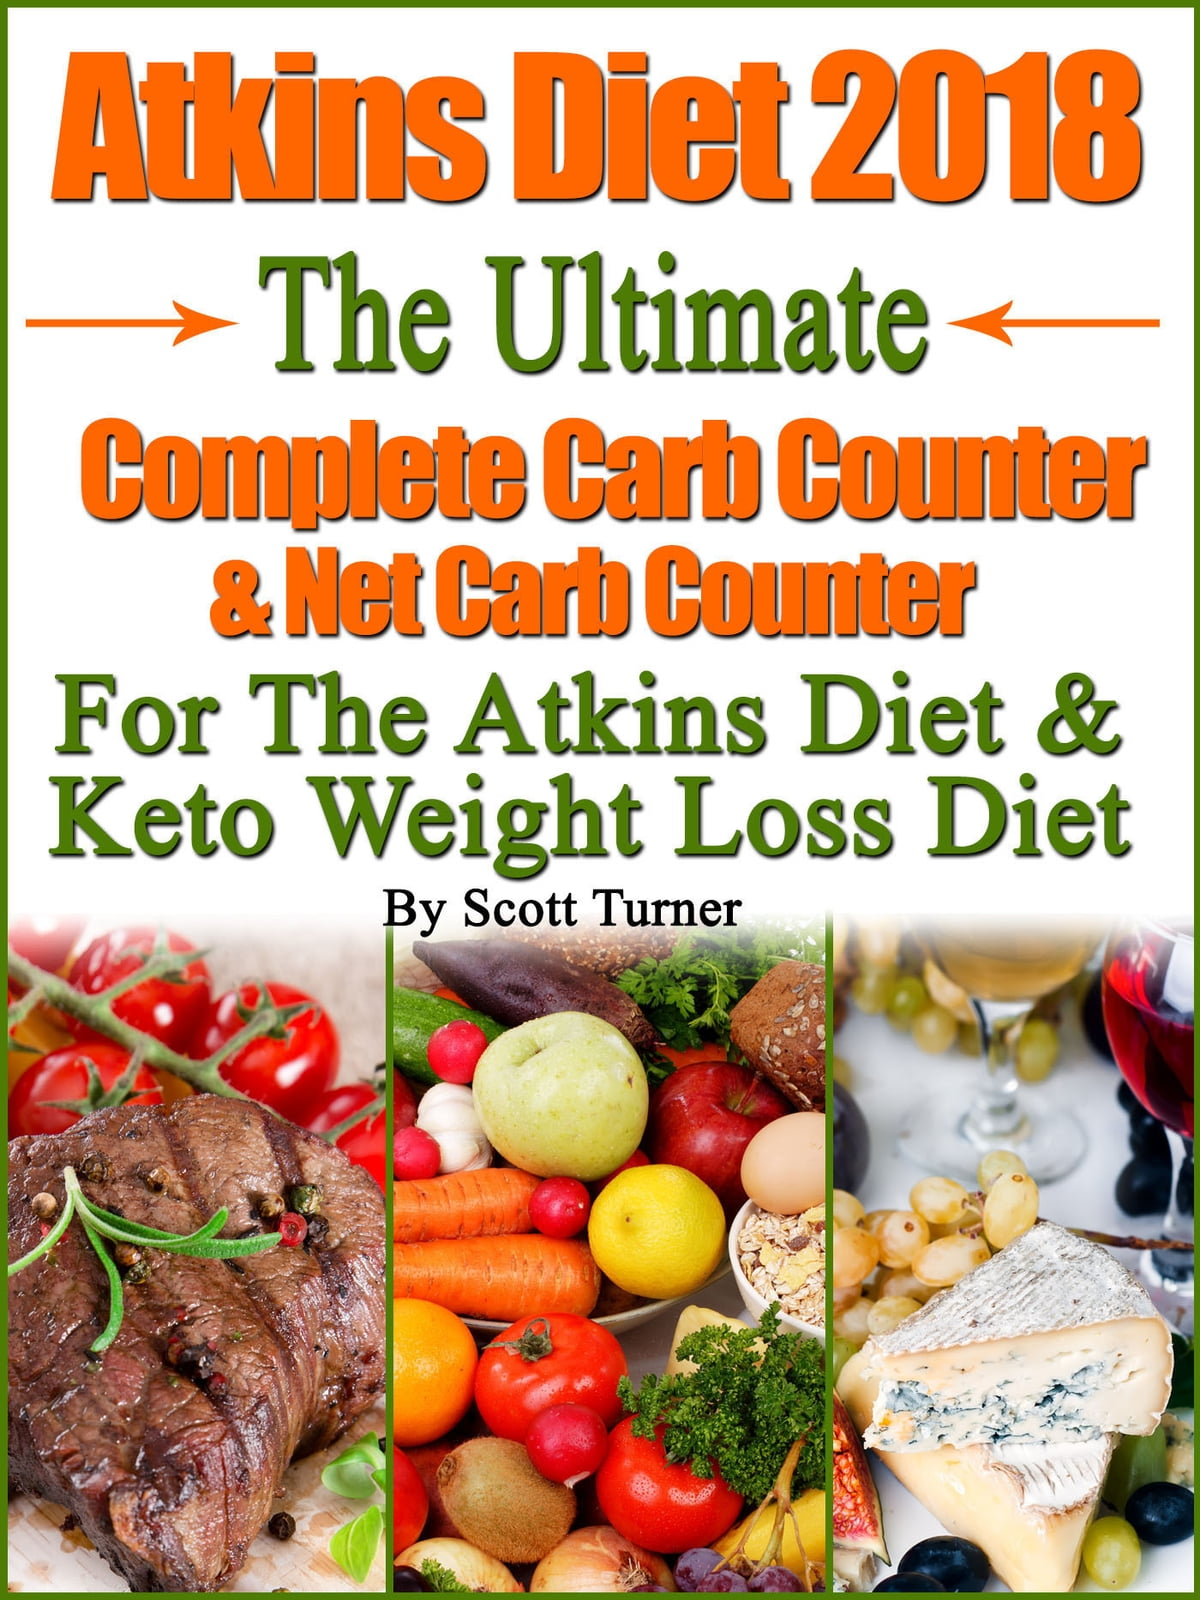 Atkins Diet 2018 The Ultimate Complete Carb Counter Net Carb Counter For The Atkins Diet Keto Weight Loss Diet Ebook By Scott Turner 9781370225675 Rakuten Kobo United States